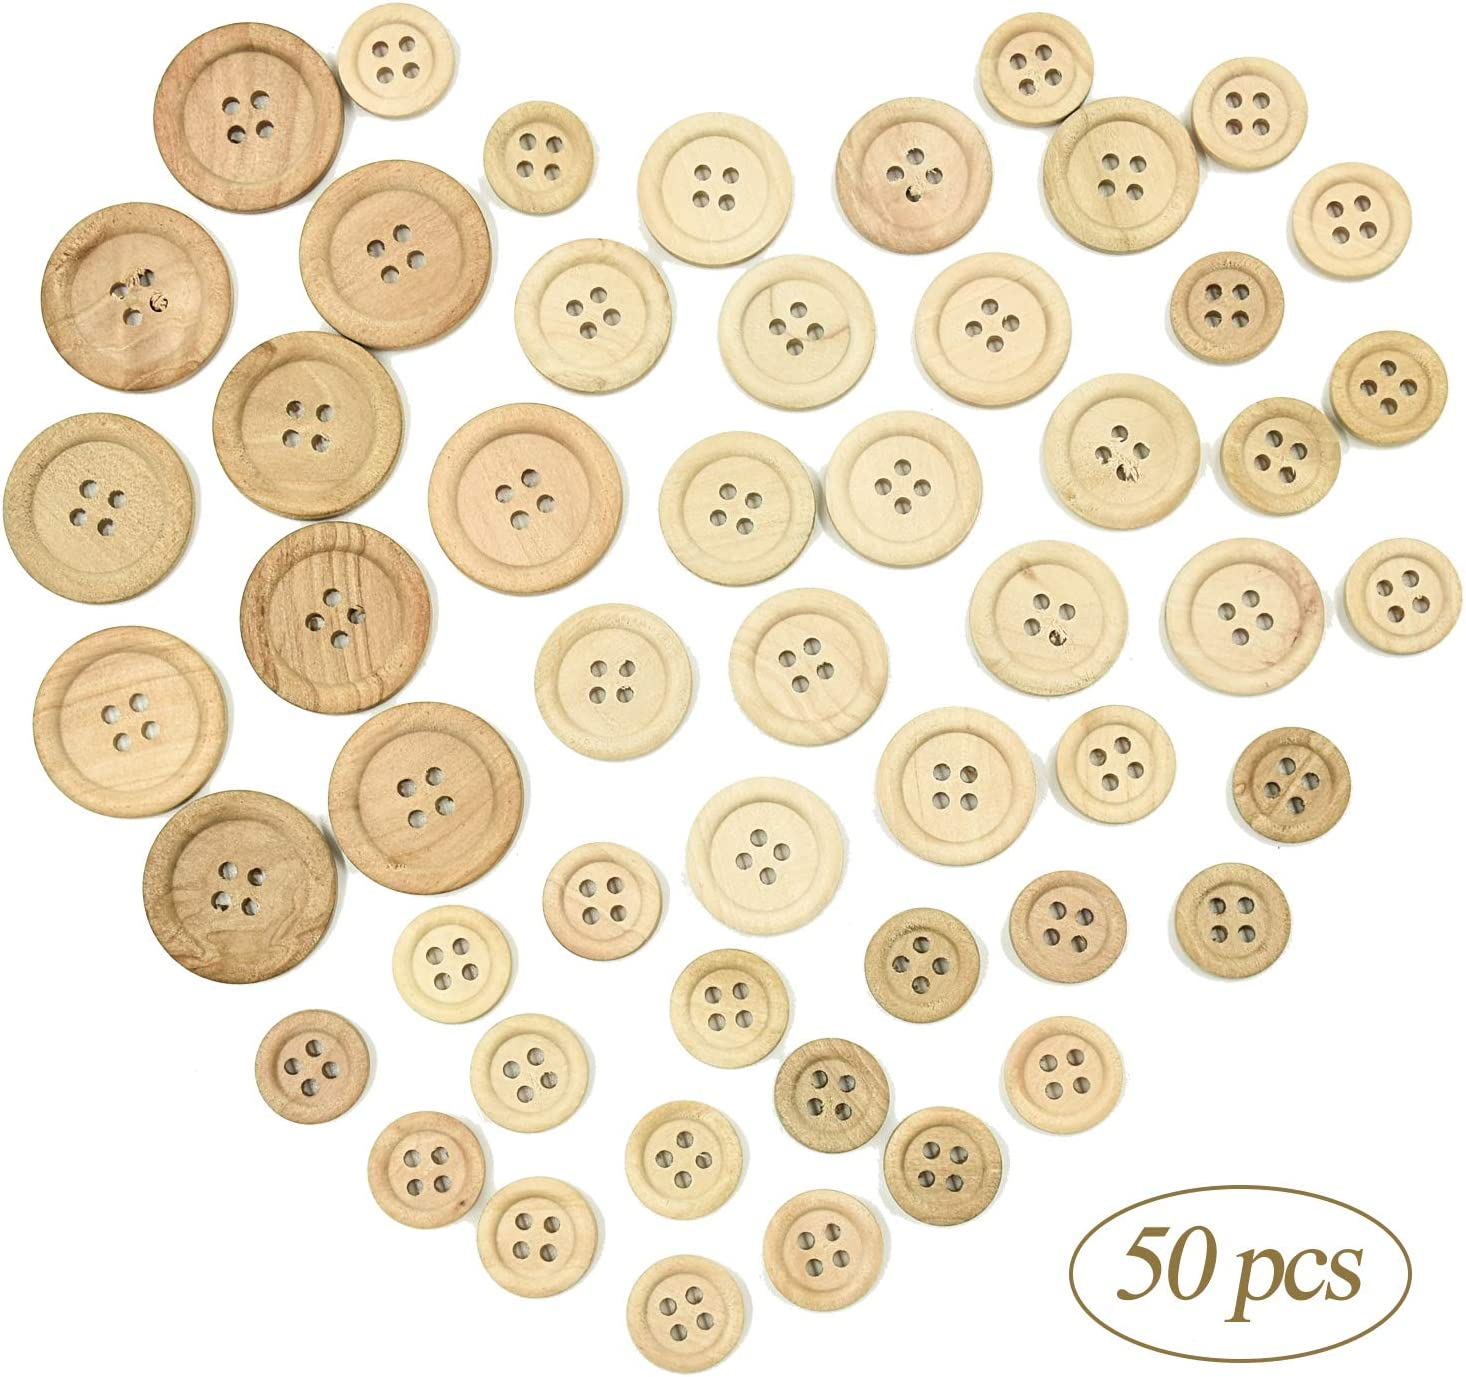 50 100 Mixed Wooden Buttons for Crafts Cardmaking Scrapbooking Sewing 15mm 25